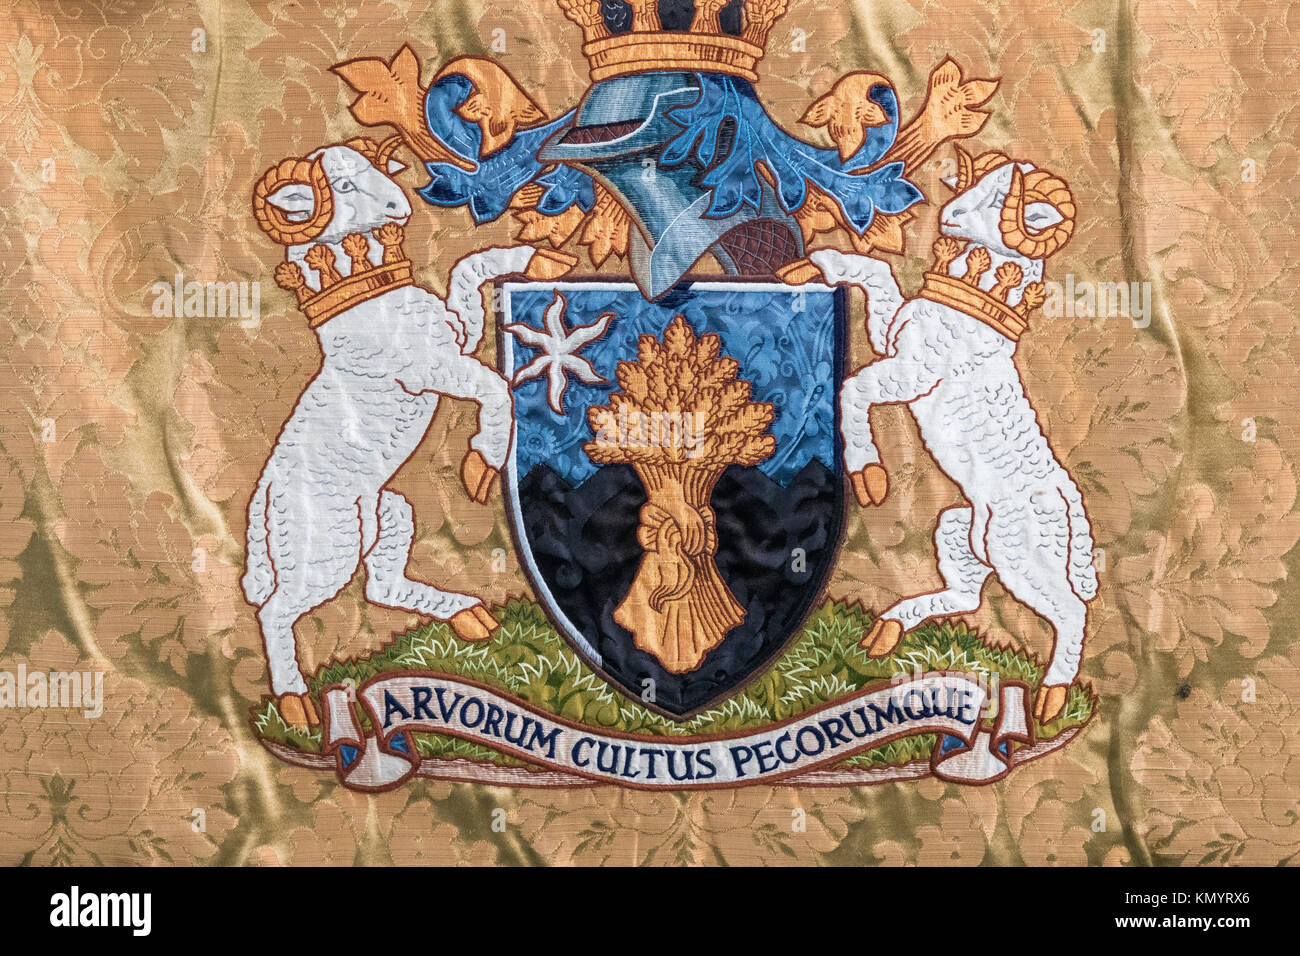 Royal Agricultural University, Cirencester motto Arvorum cultus pecorumque from the University Chapel - Stock Image